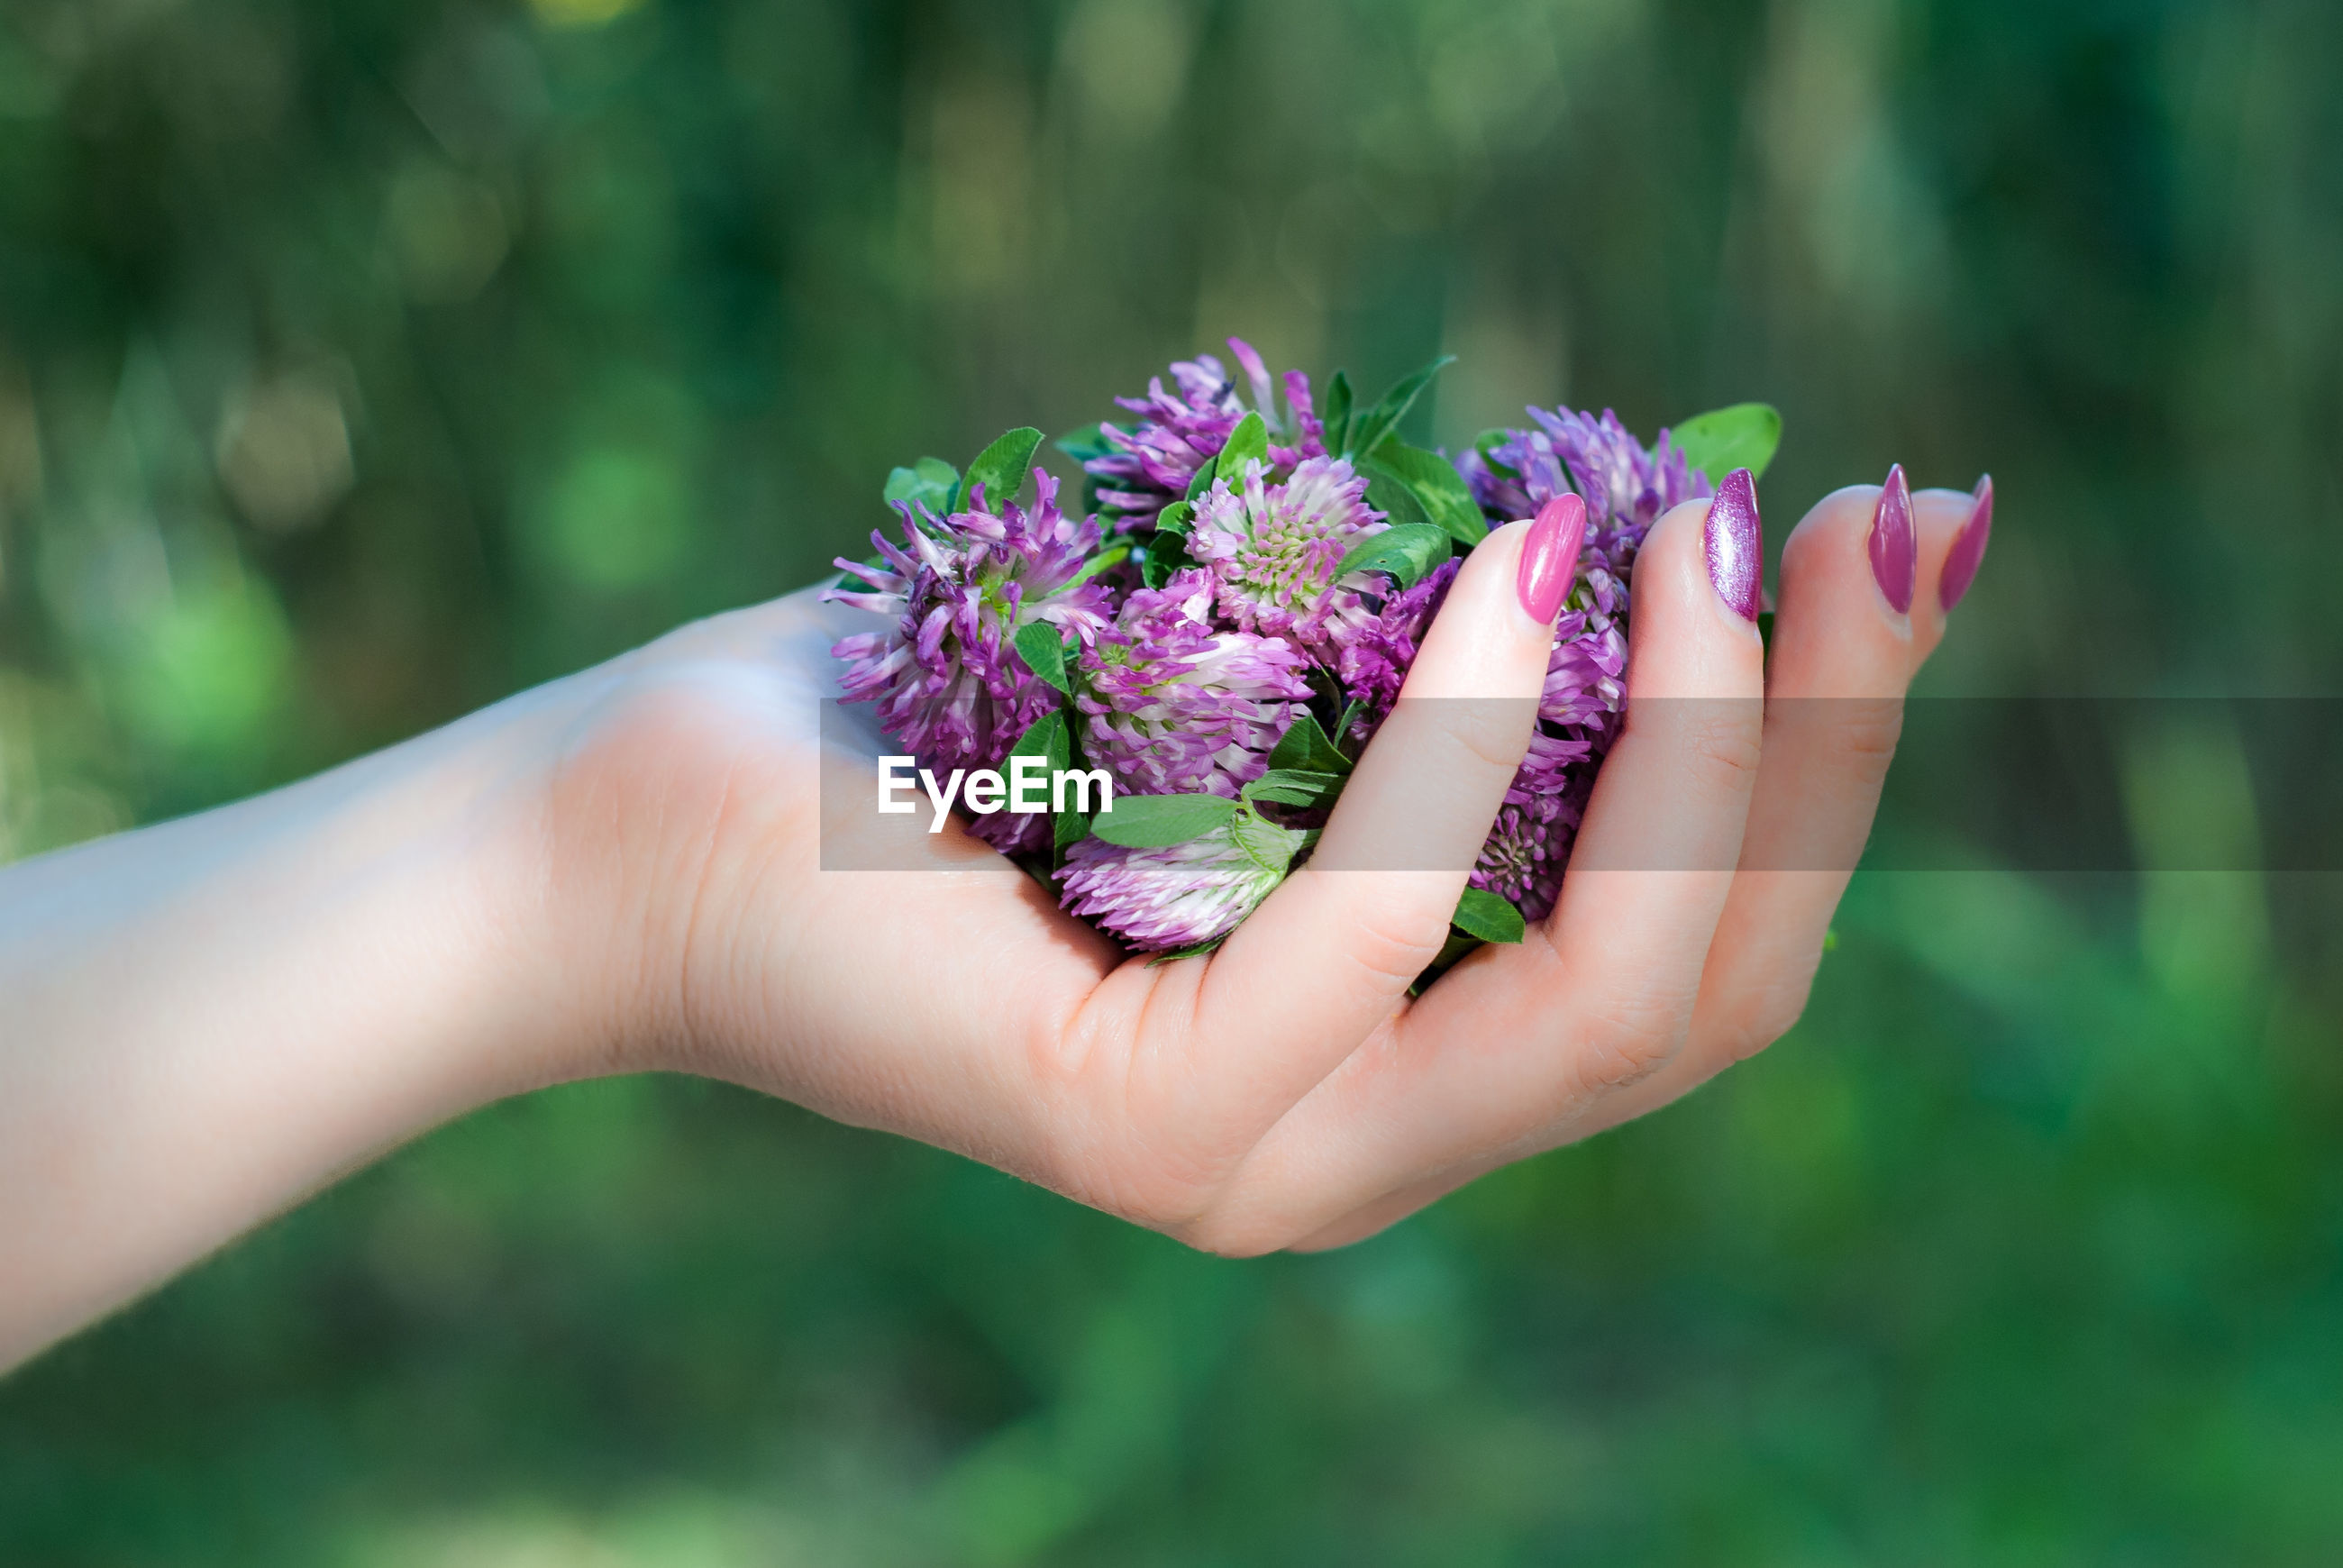 CLOSE-UP OF HAND HOLDING PURPLE FLOWERING PLANTS